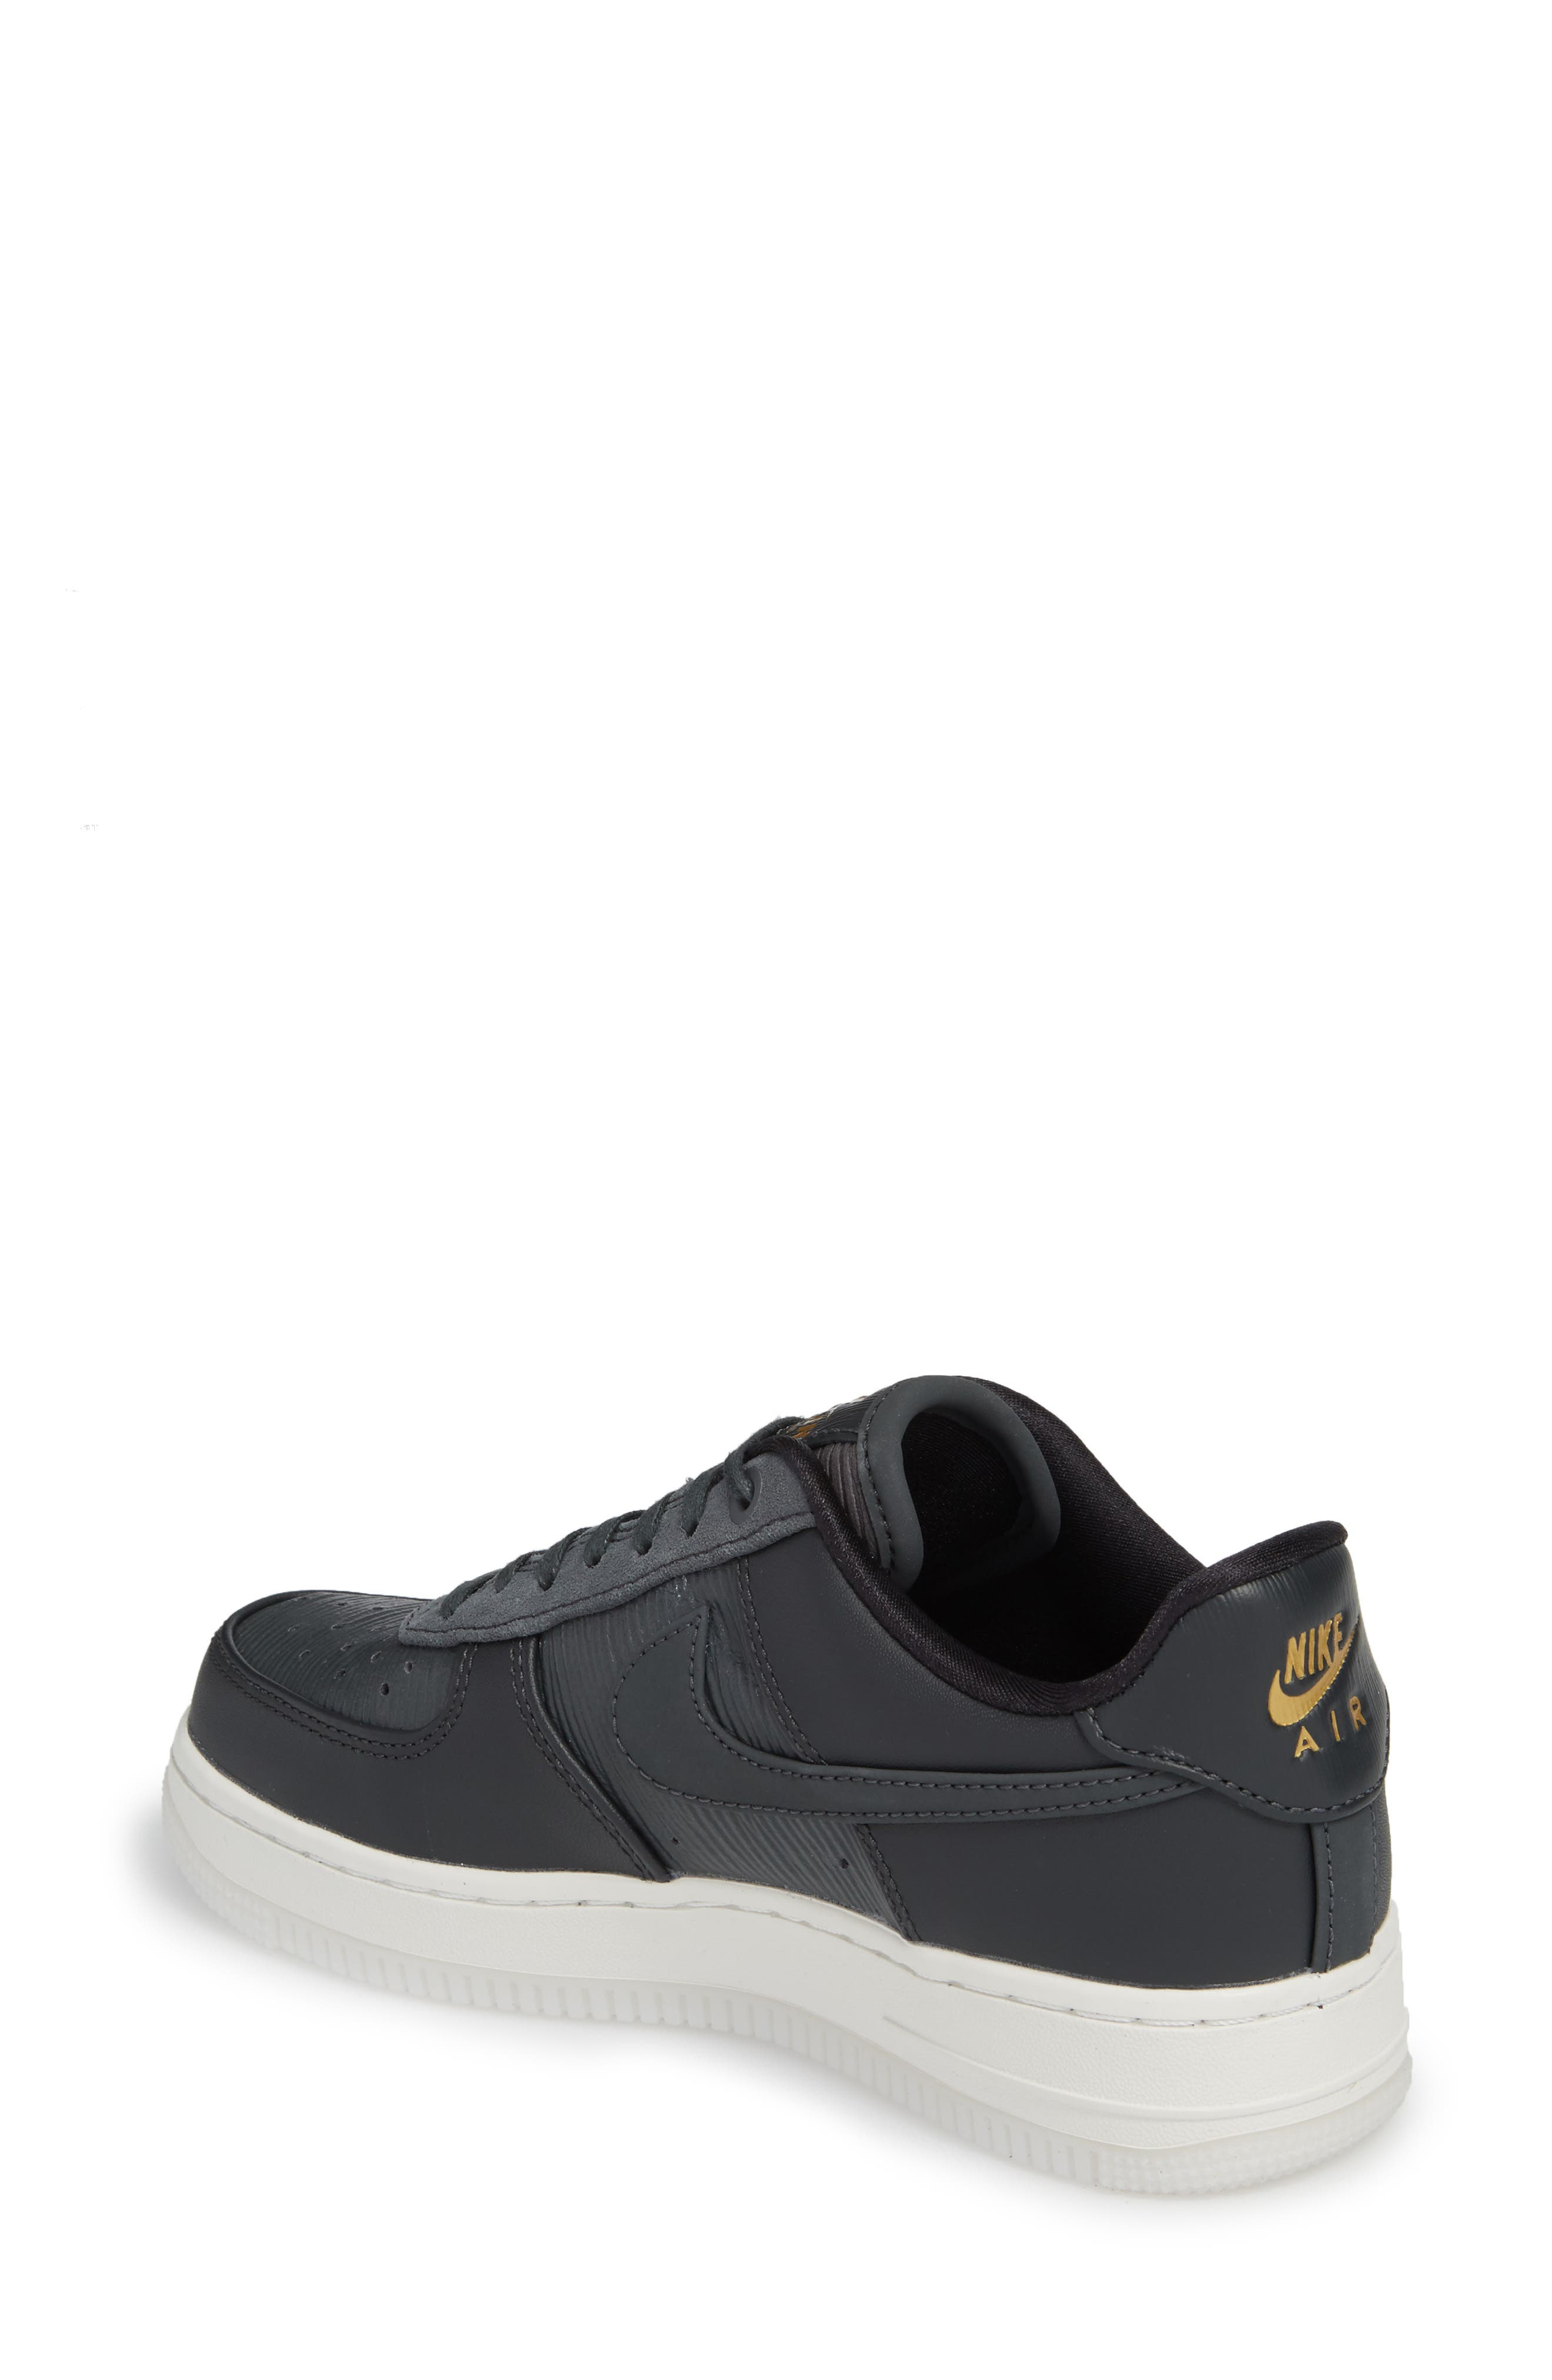 Air Force 1 '07 LX Sneaker,                             Alternate thumbnail 2, color,                             ANTHRACITE/ ANTHRACITE